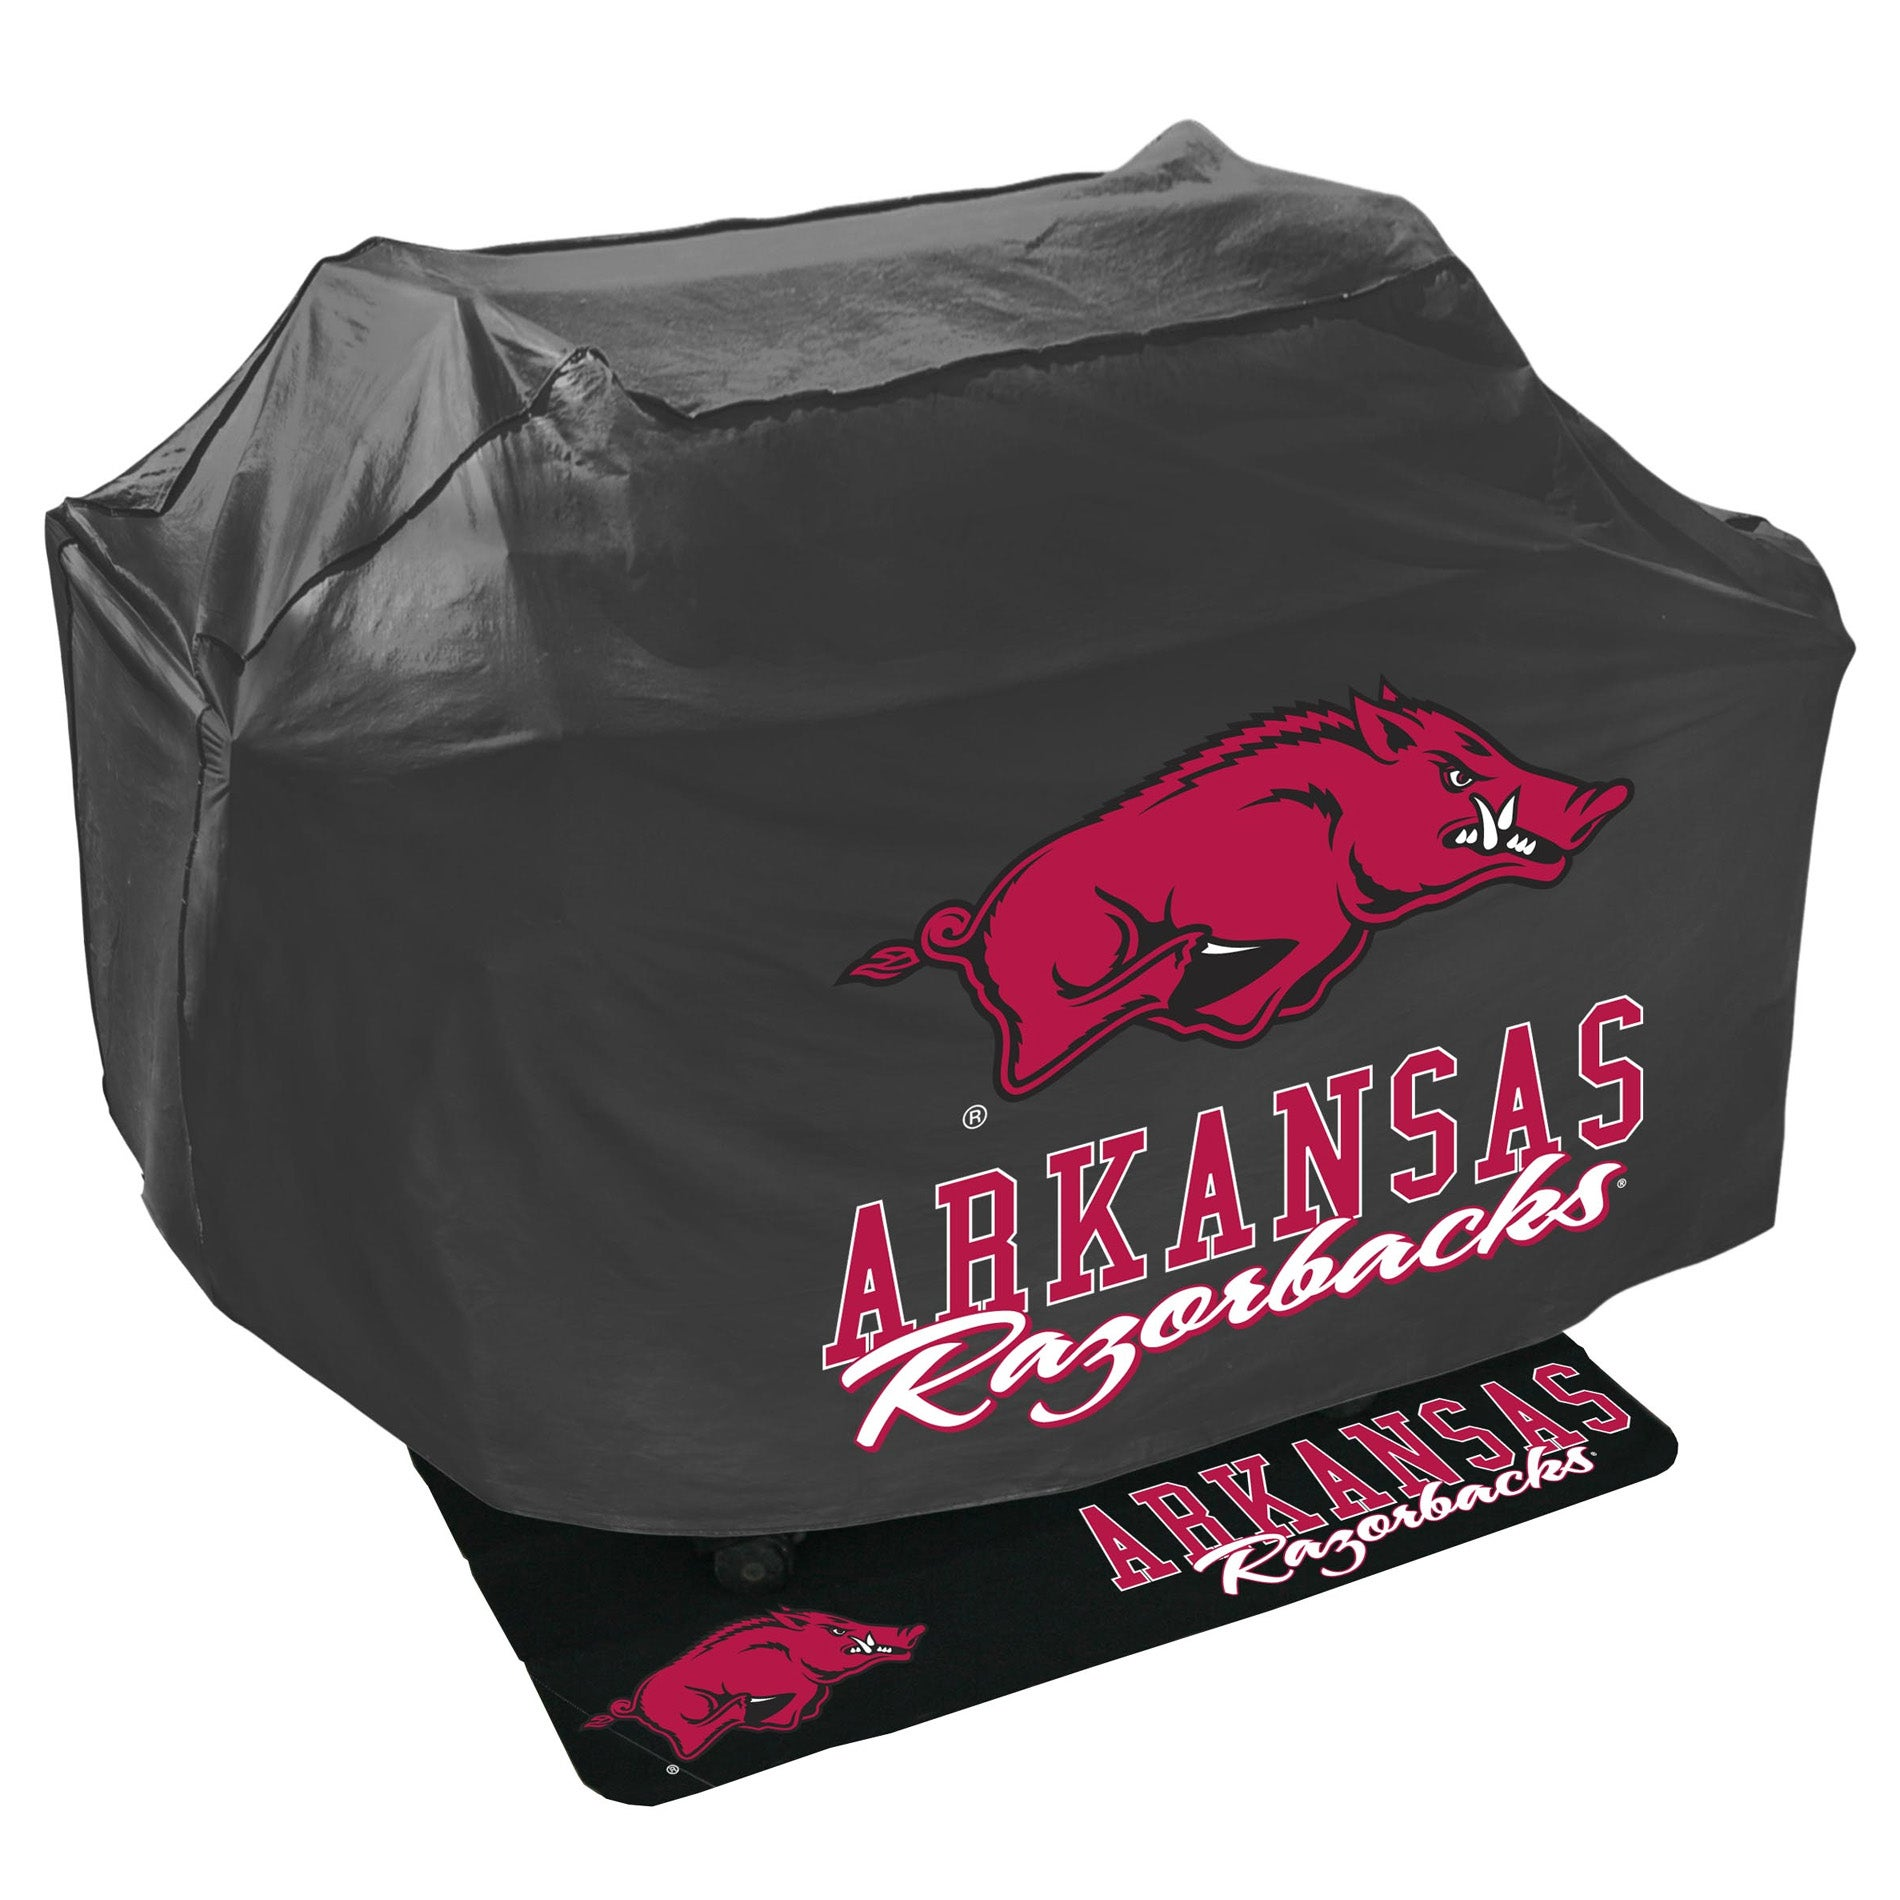 Arkansas Razorbacks Grill Cover and Mat Set